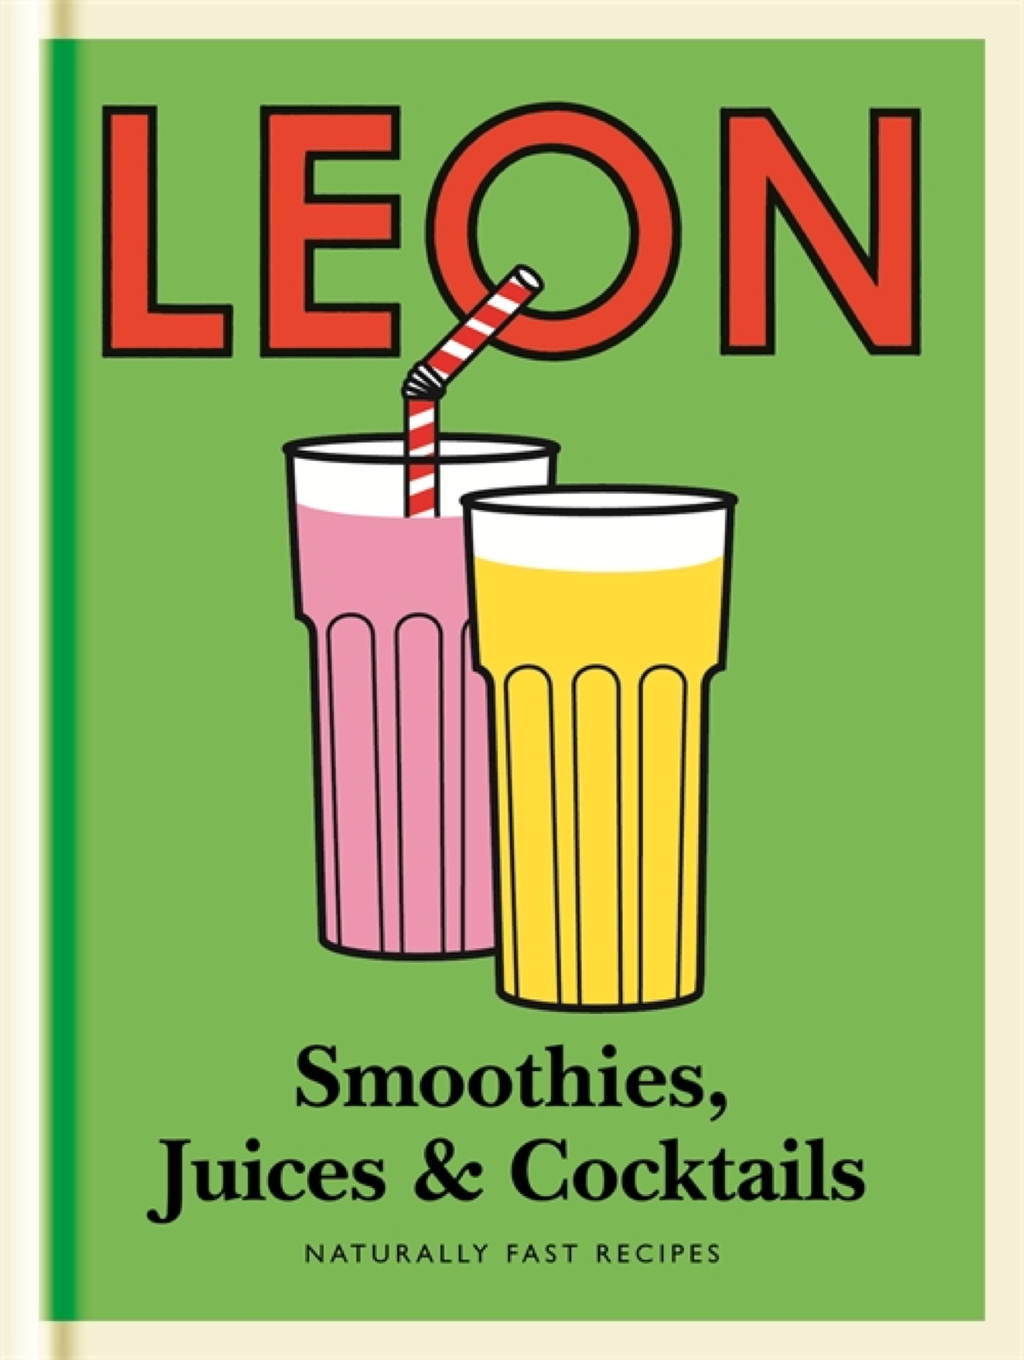 Leon Smoothies,  Juices & Cocktails (Little Leons) Quick and simple ideas for healthy eating and drinking